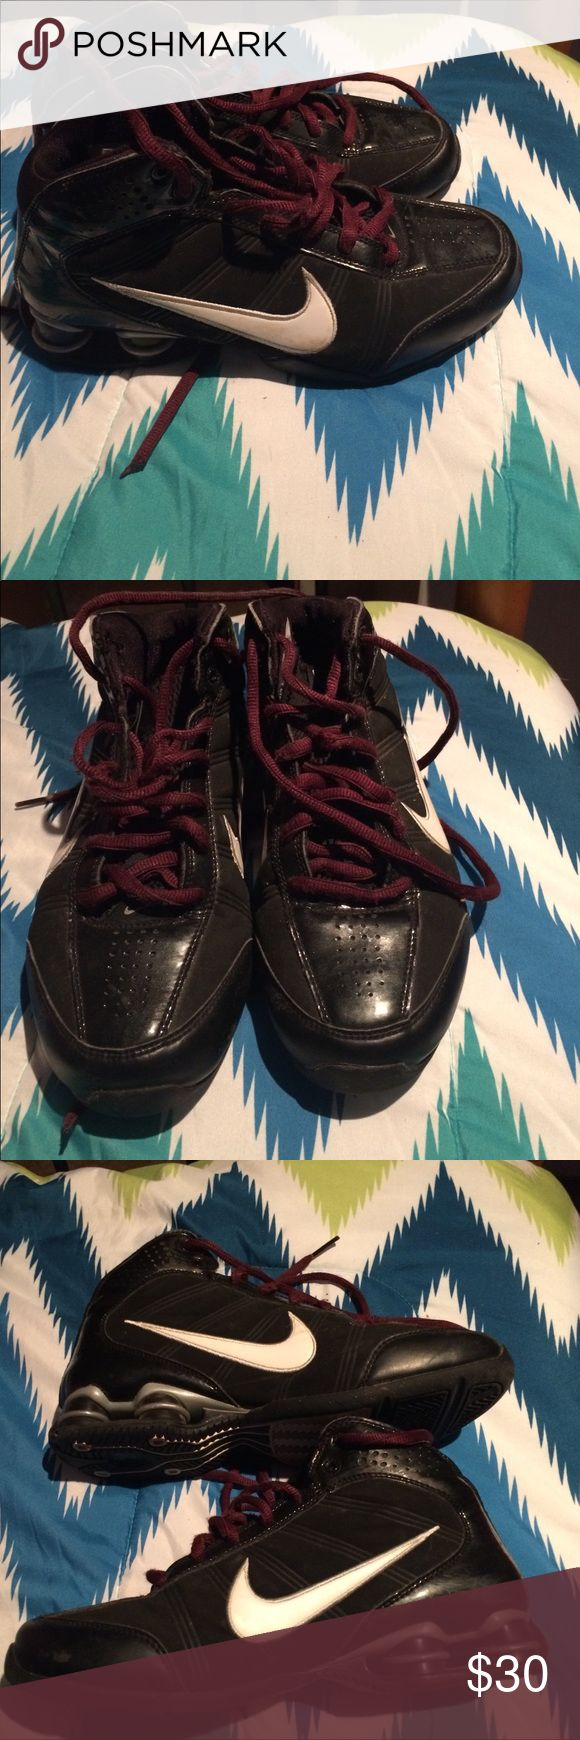 Black Nike shox Women's size 6 black Nike shox with maroon laces. Worn mostly indoors for basketball Nike Shoes Athletic Shoes